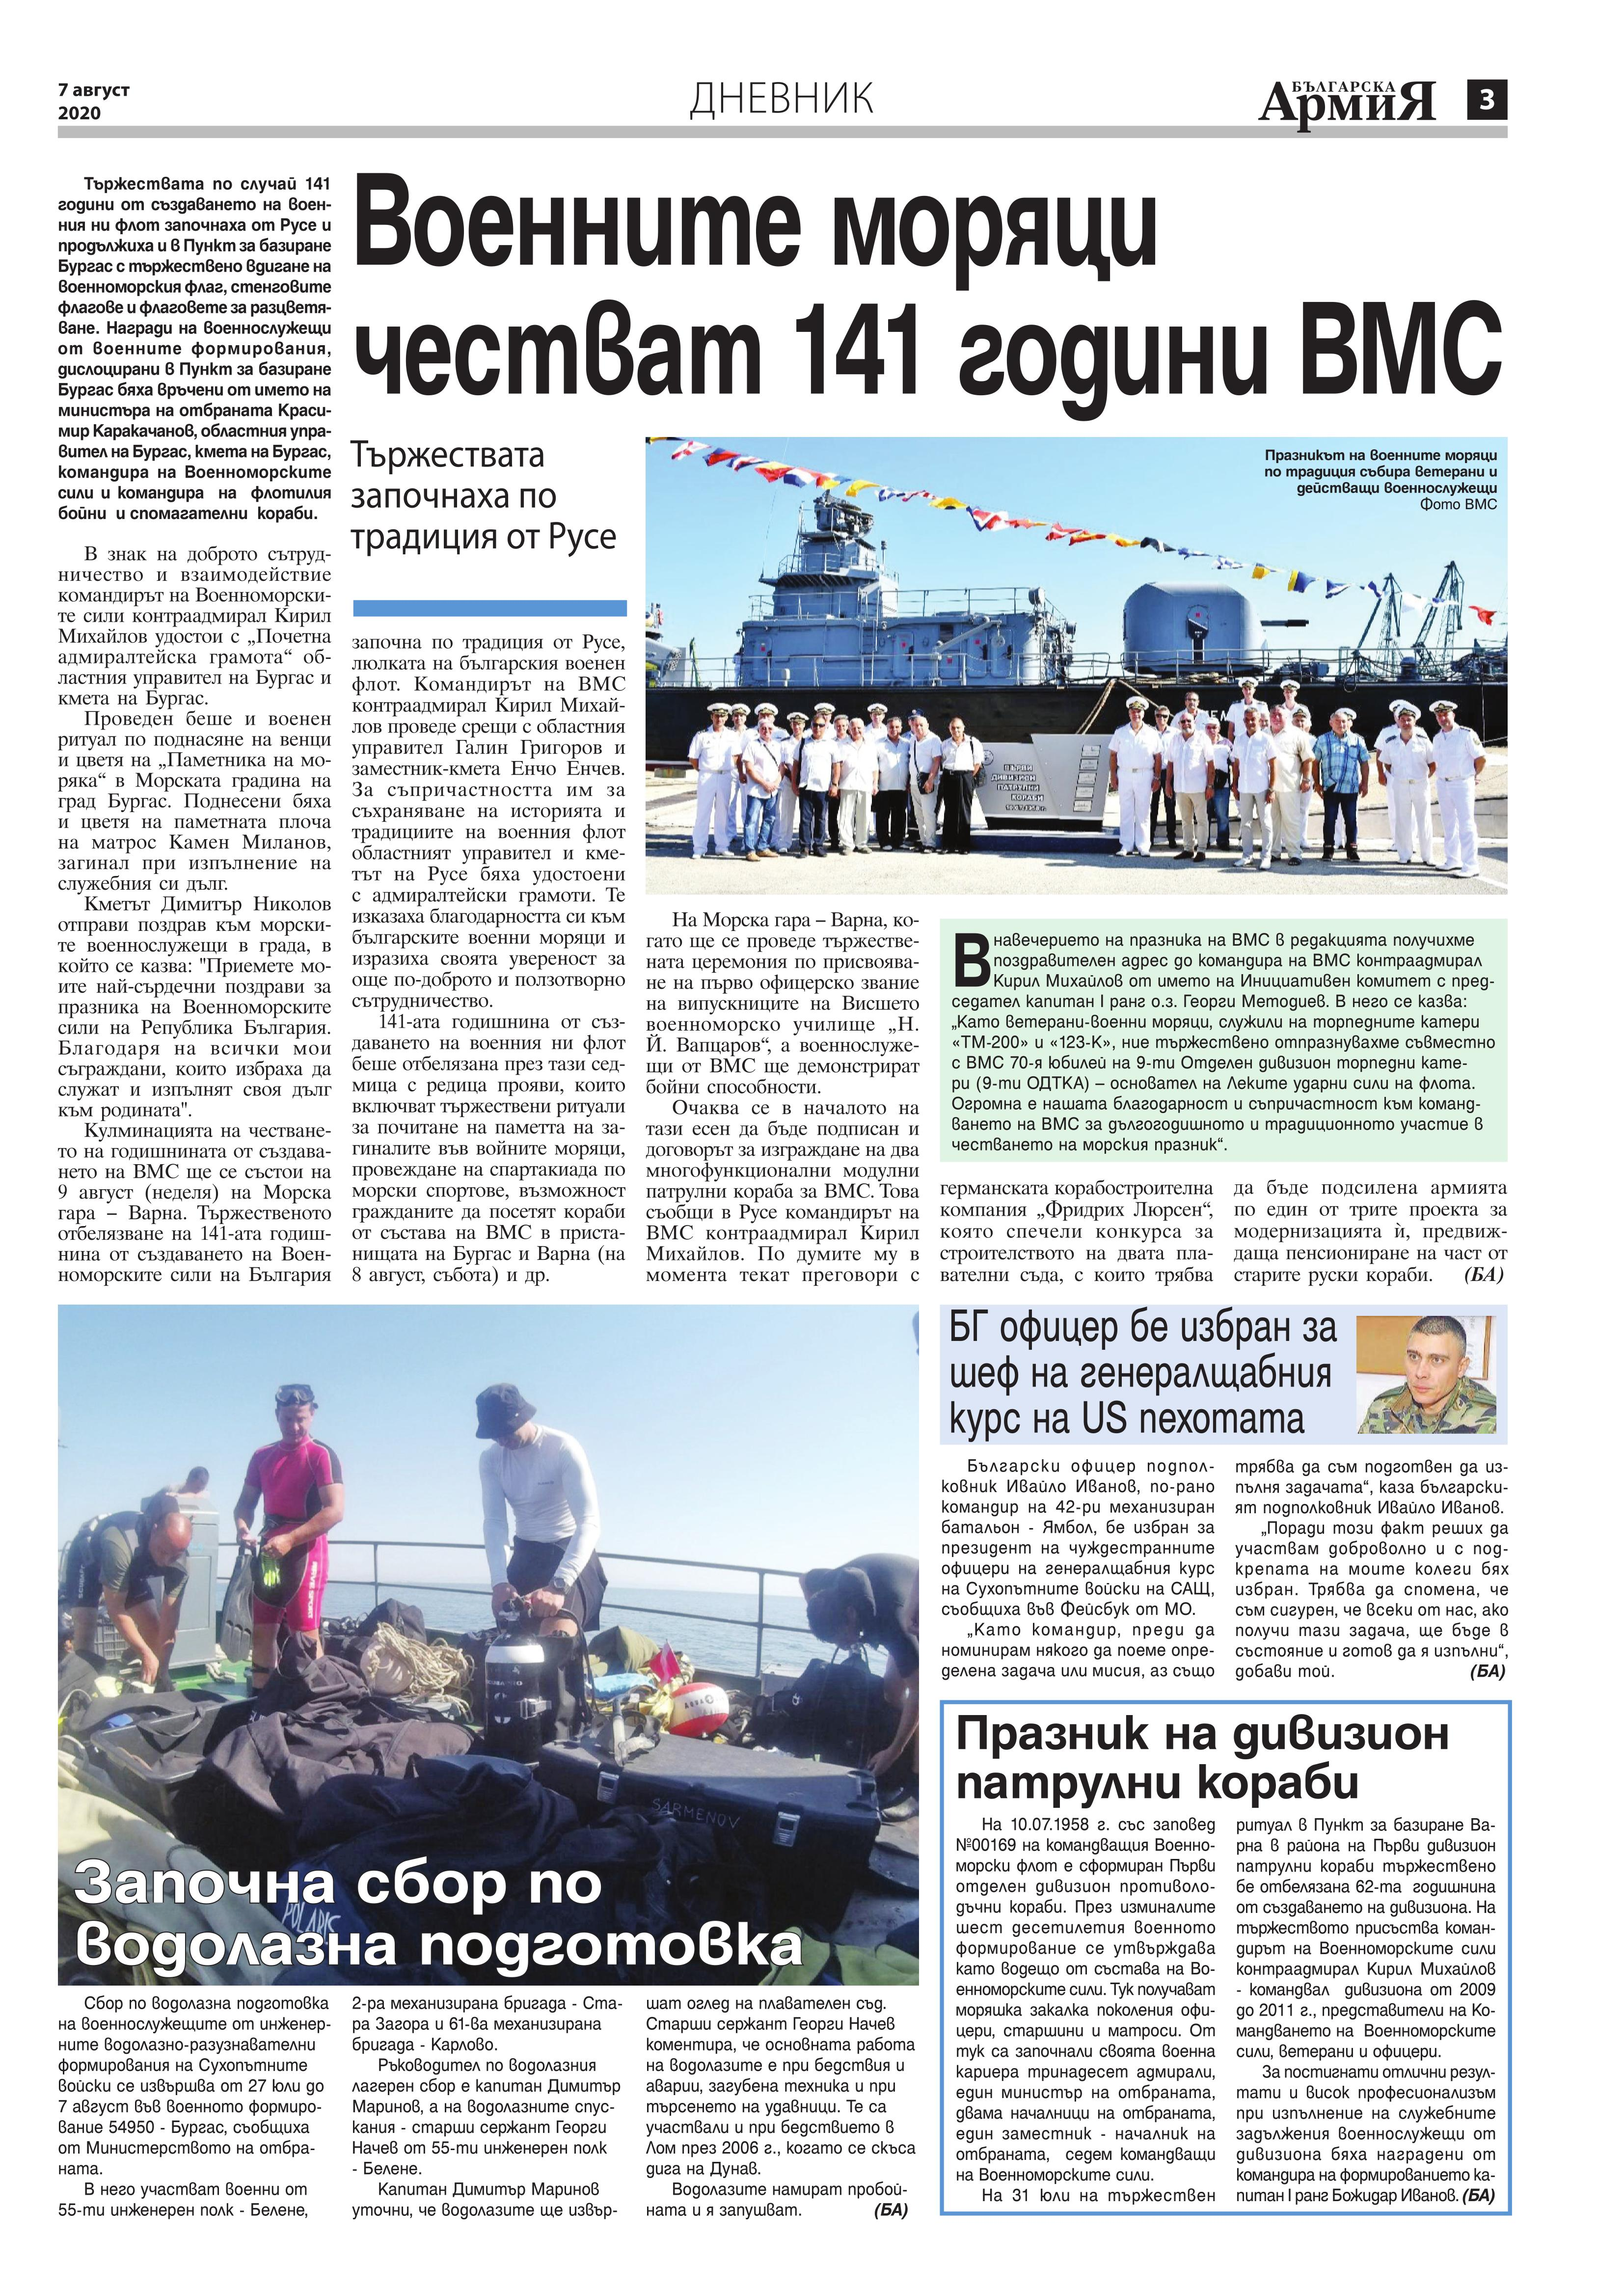 https://www.armymedia.bg/wp-content/uploads/2015/06/03.page1_-146.jpg